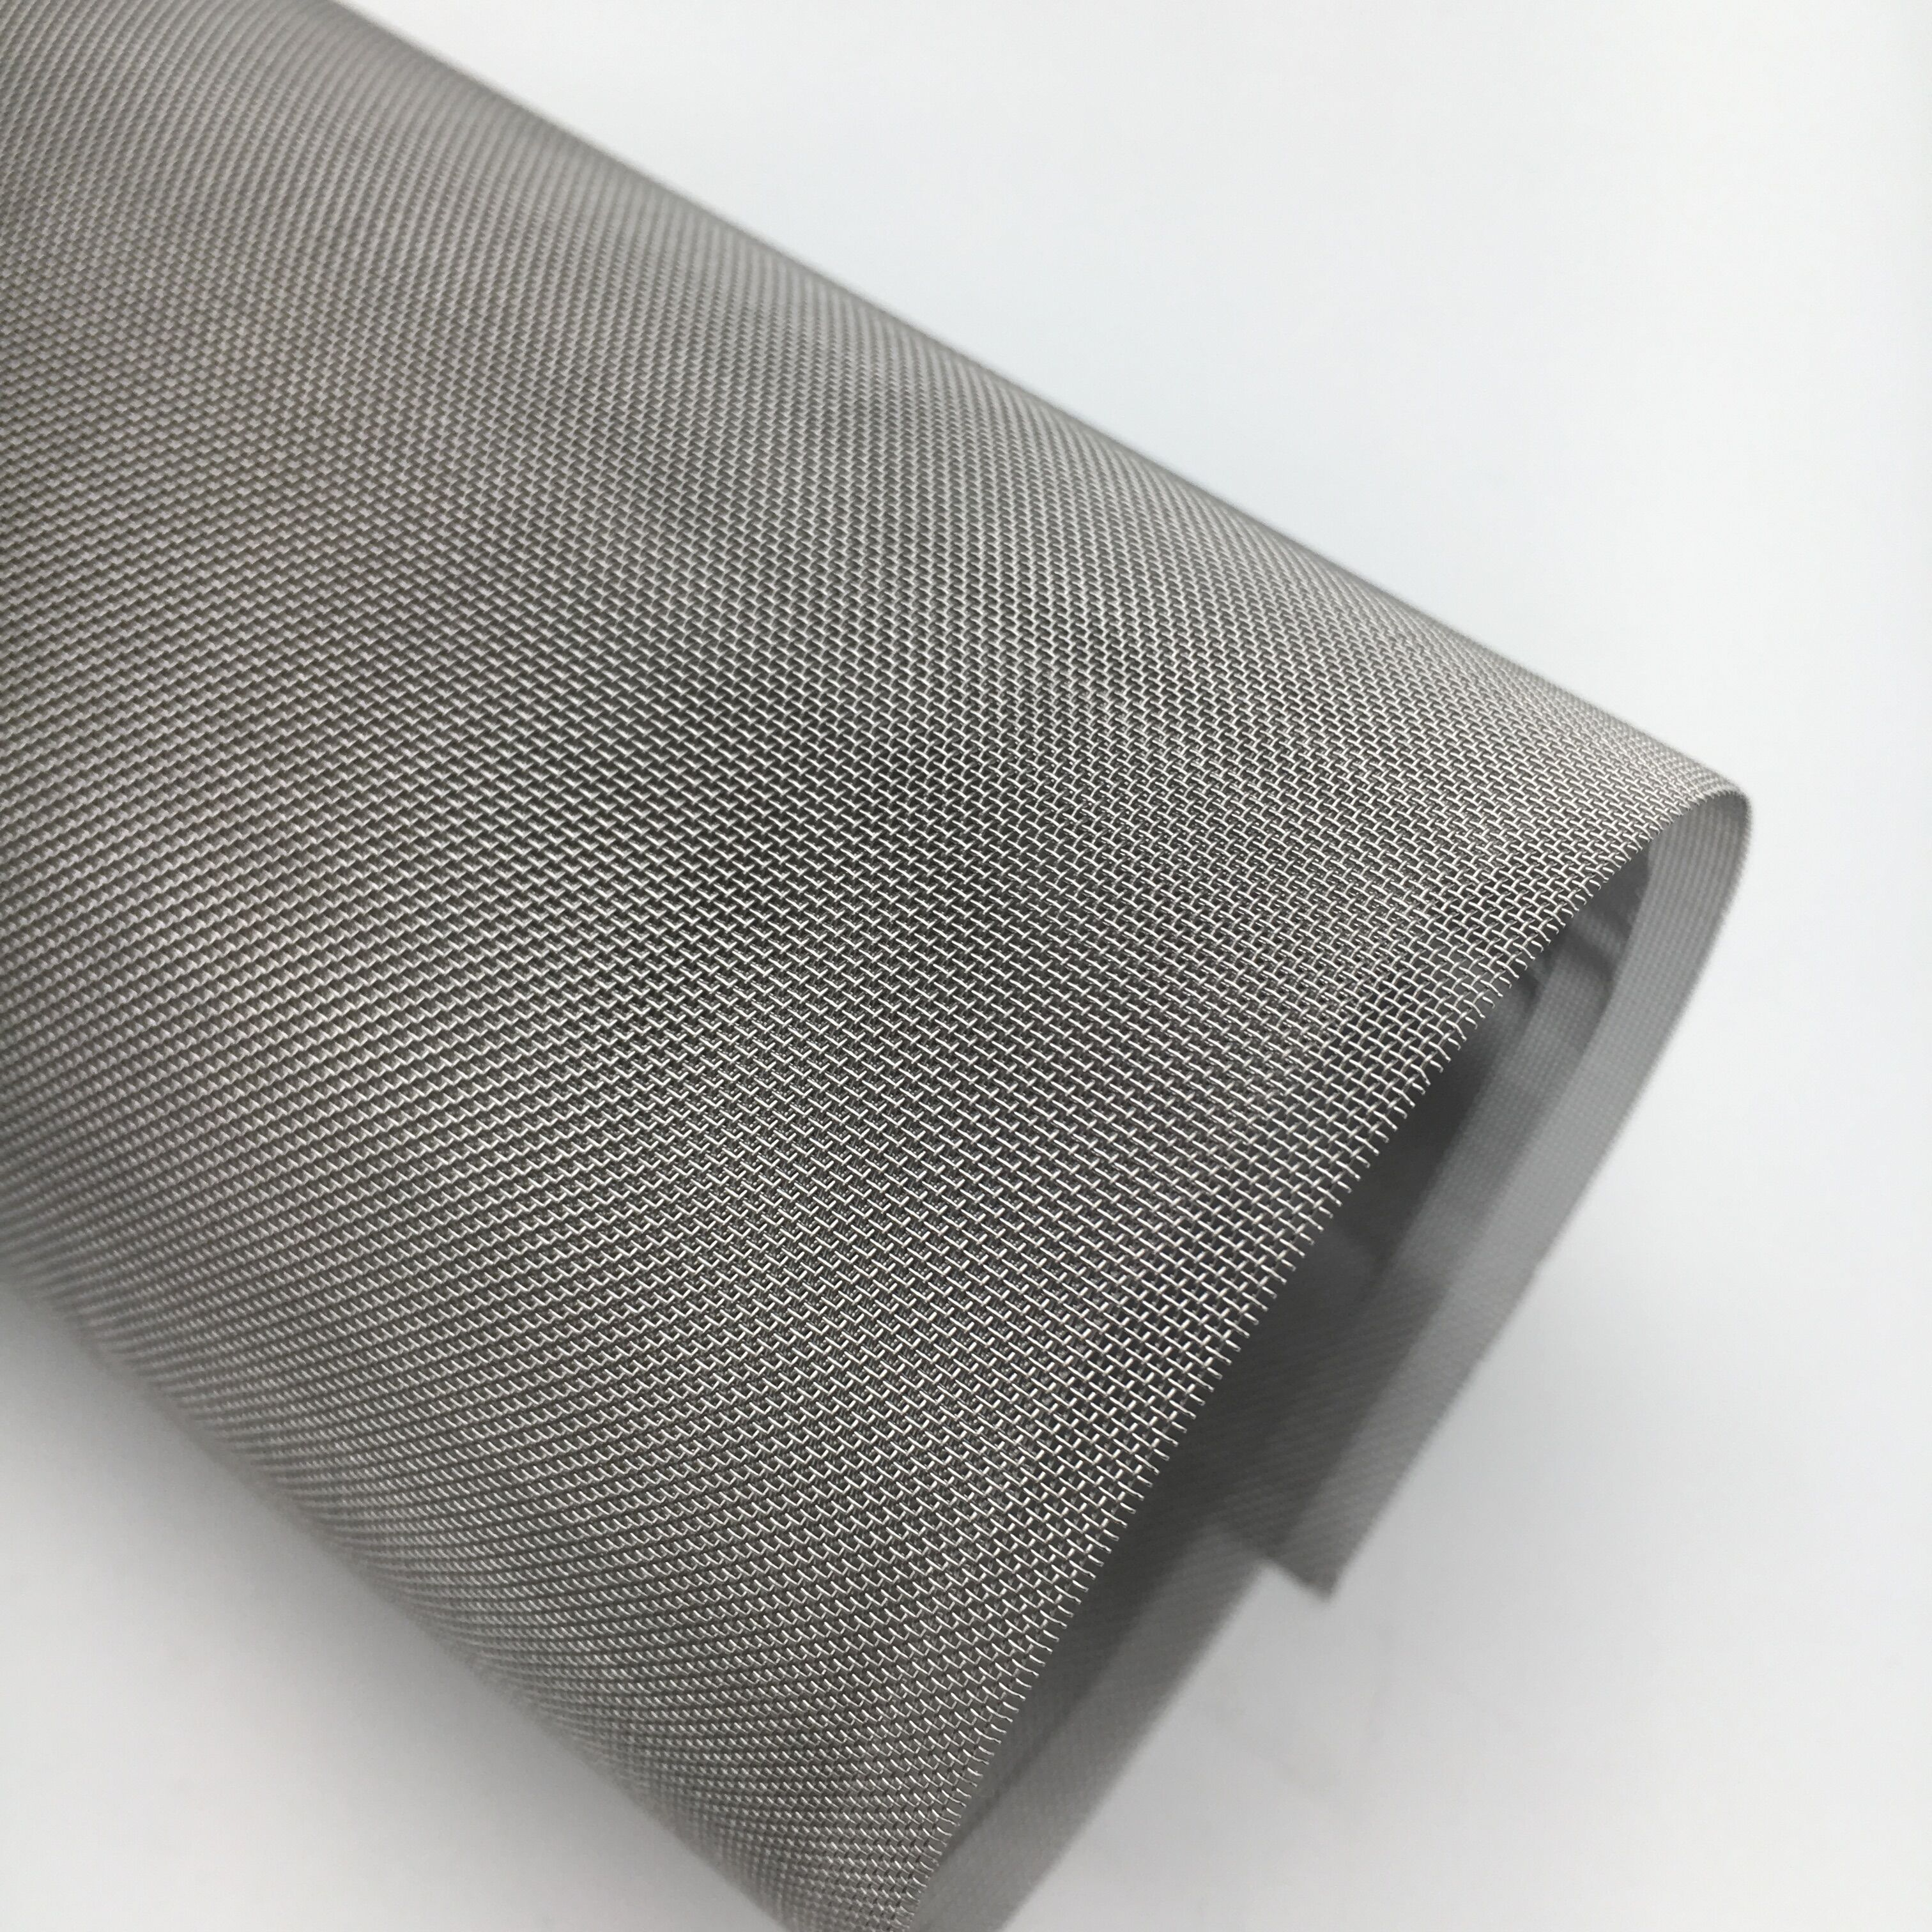 Heat resistant 330 stainless steel screen wire <strong>mesh</strong>